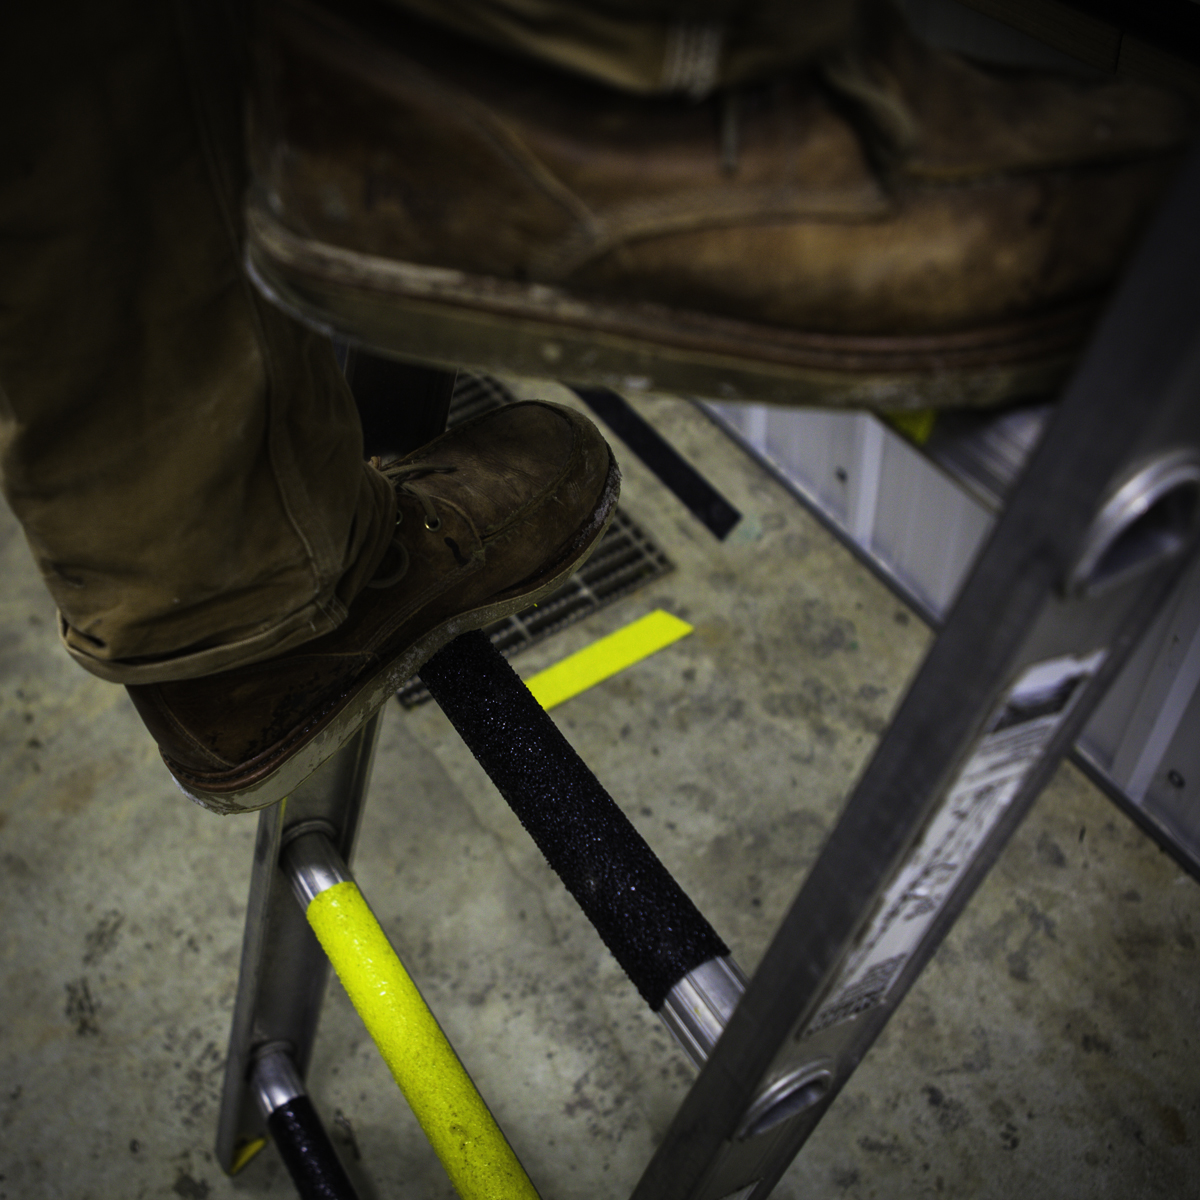 GripAll-Ladder-Shop-5748.JPG